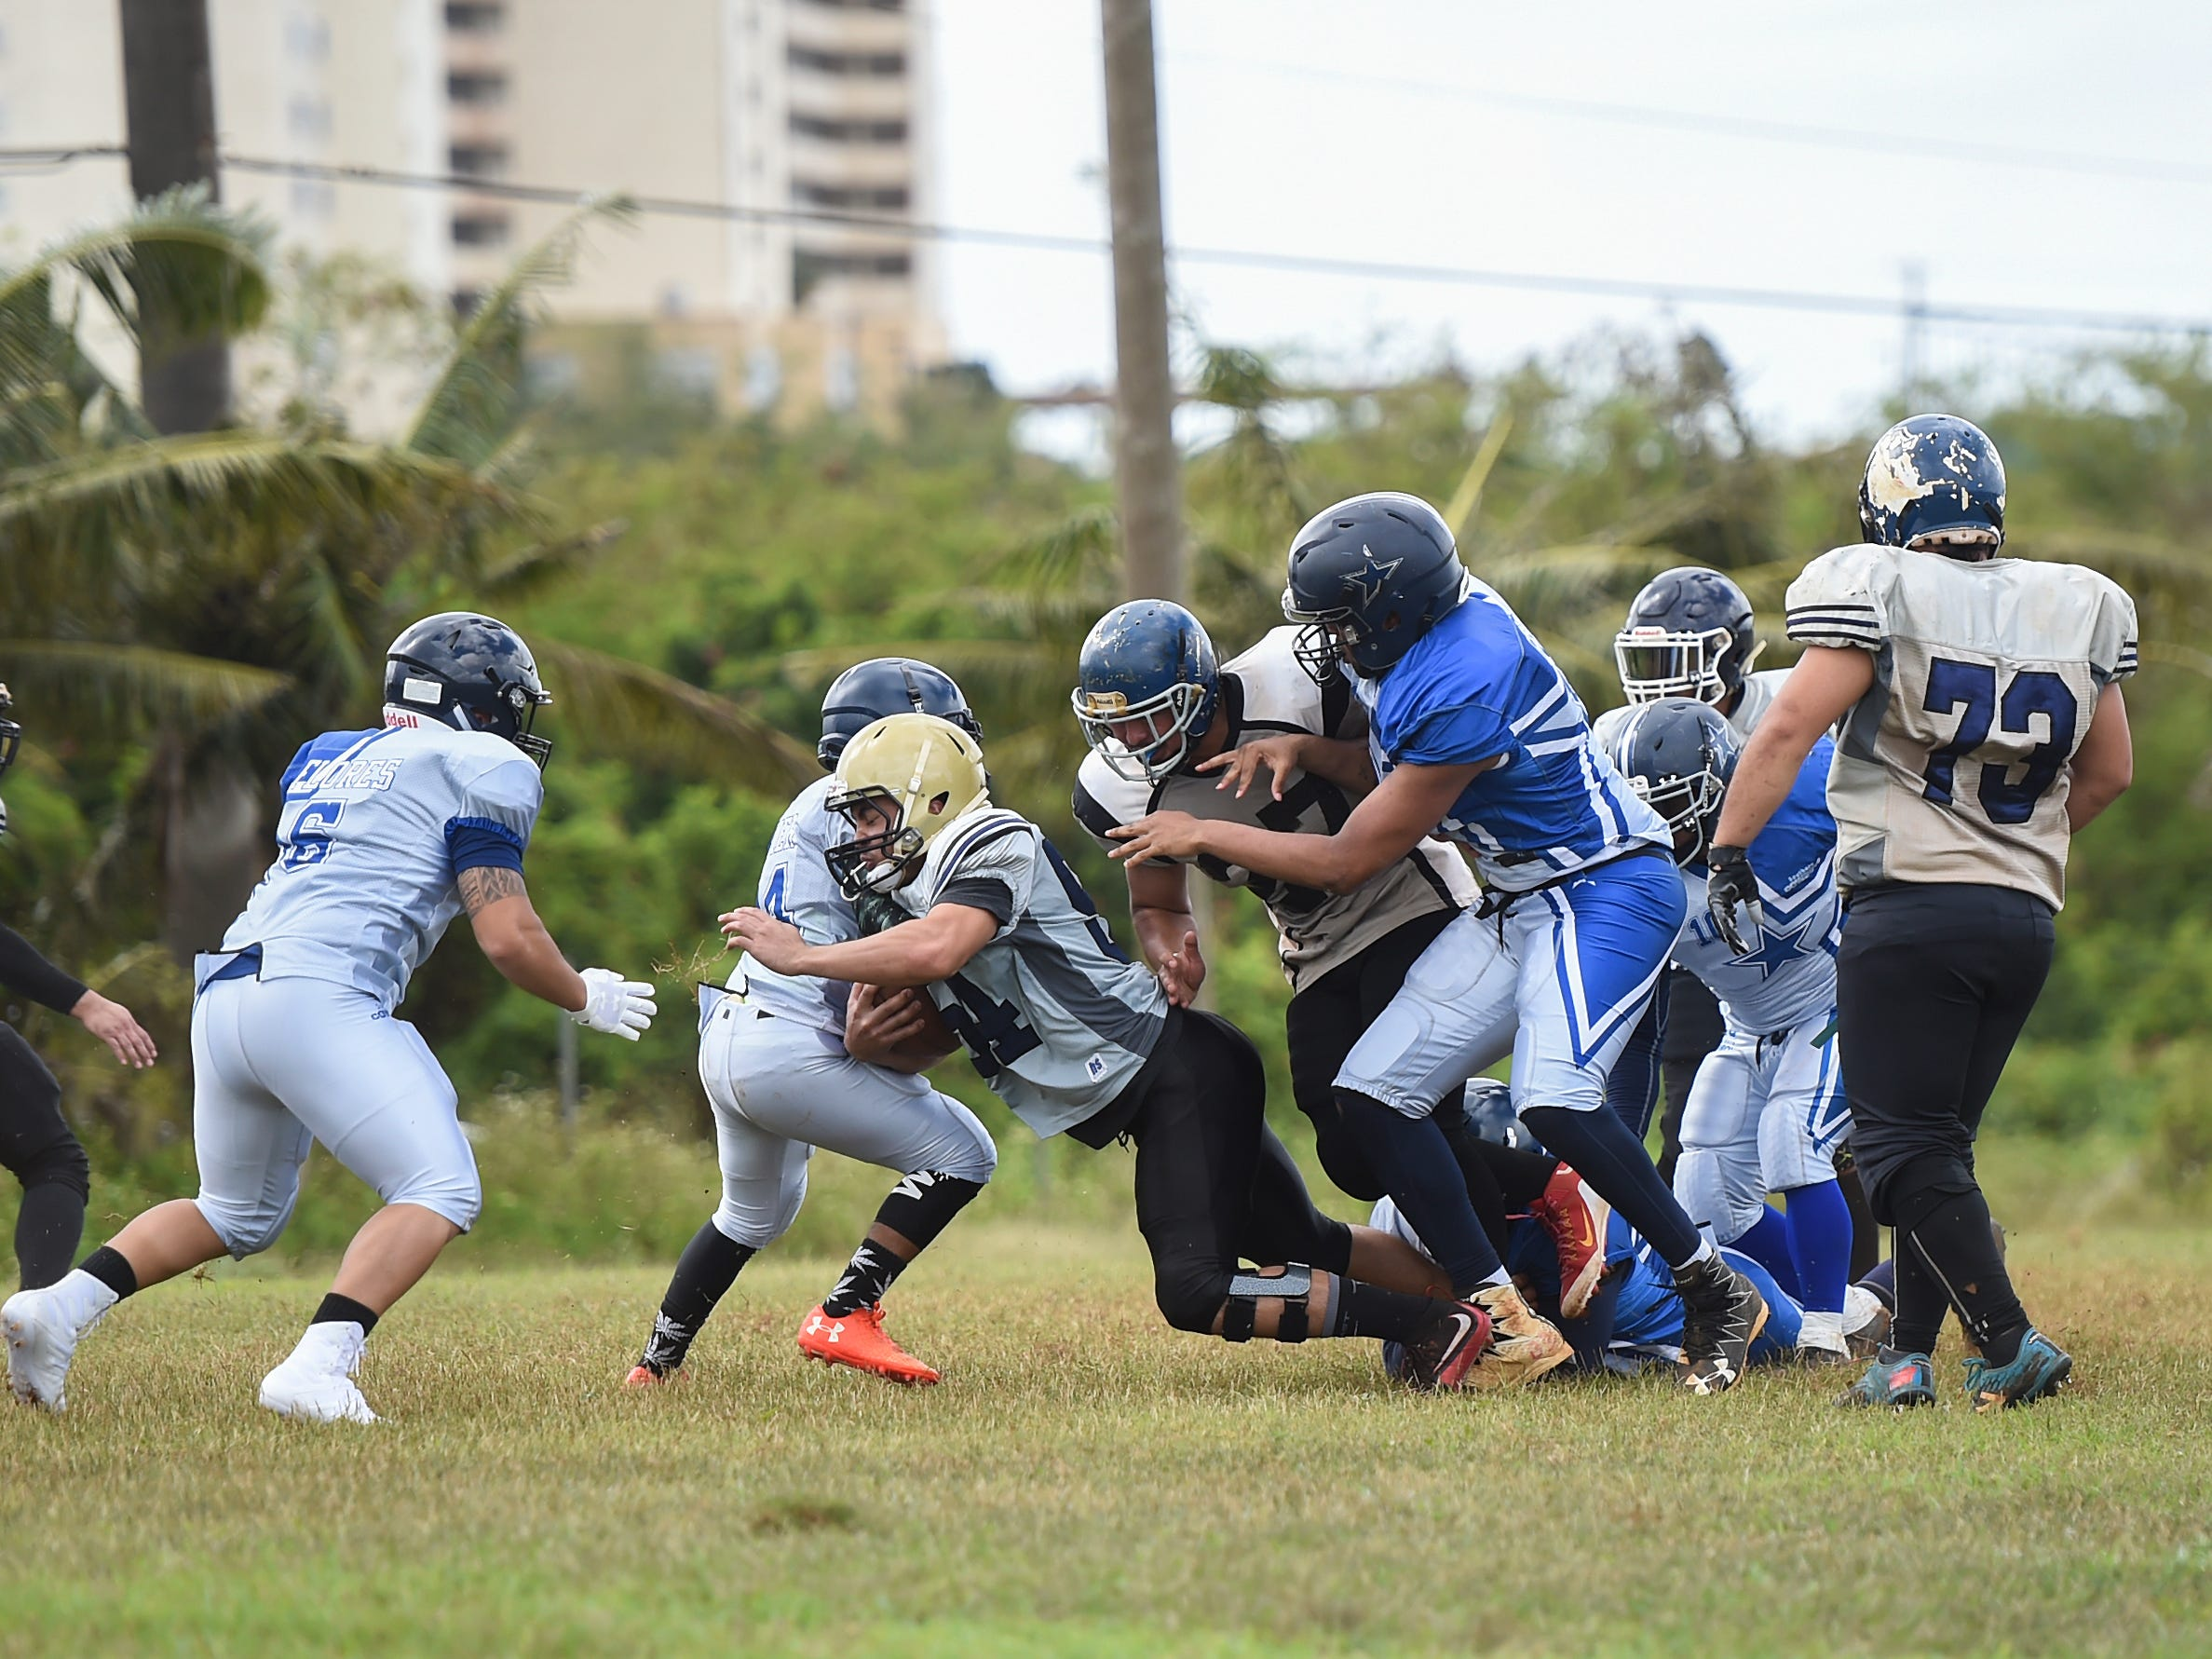 The Southern Cowboys take on the visiting Guam Raiders for their Budweiser Guahan Varsity Football League game at Eagles Field in Mangilao, Feb. 2, 2019.